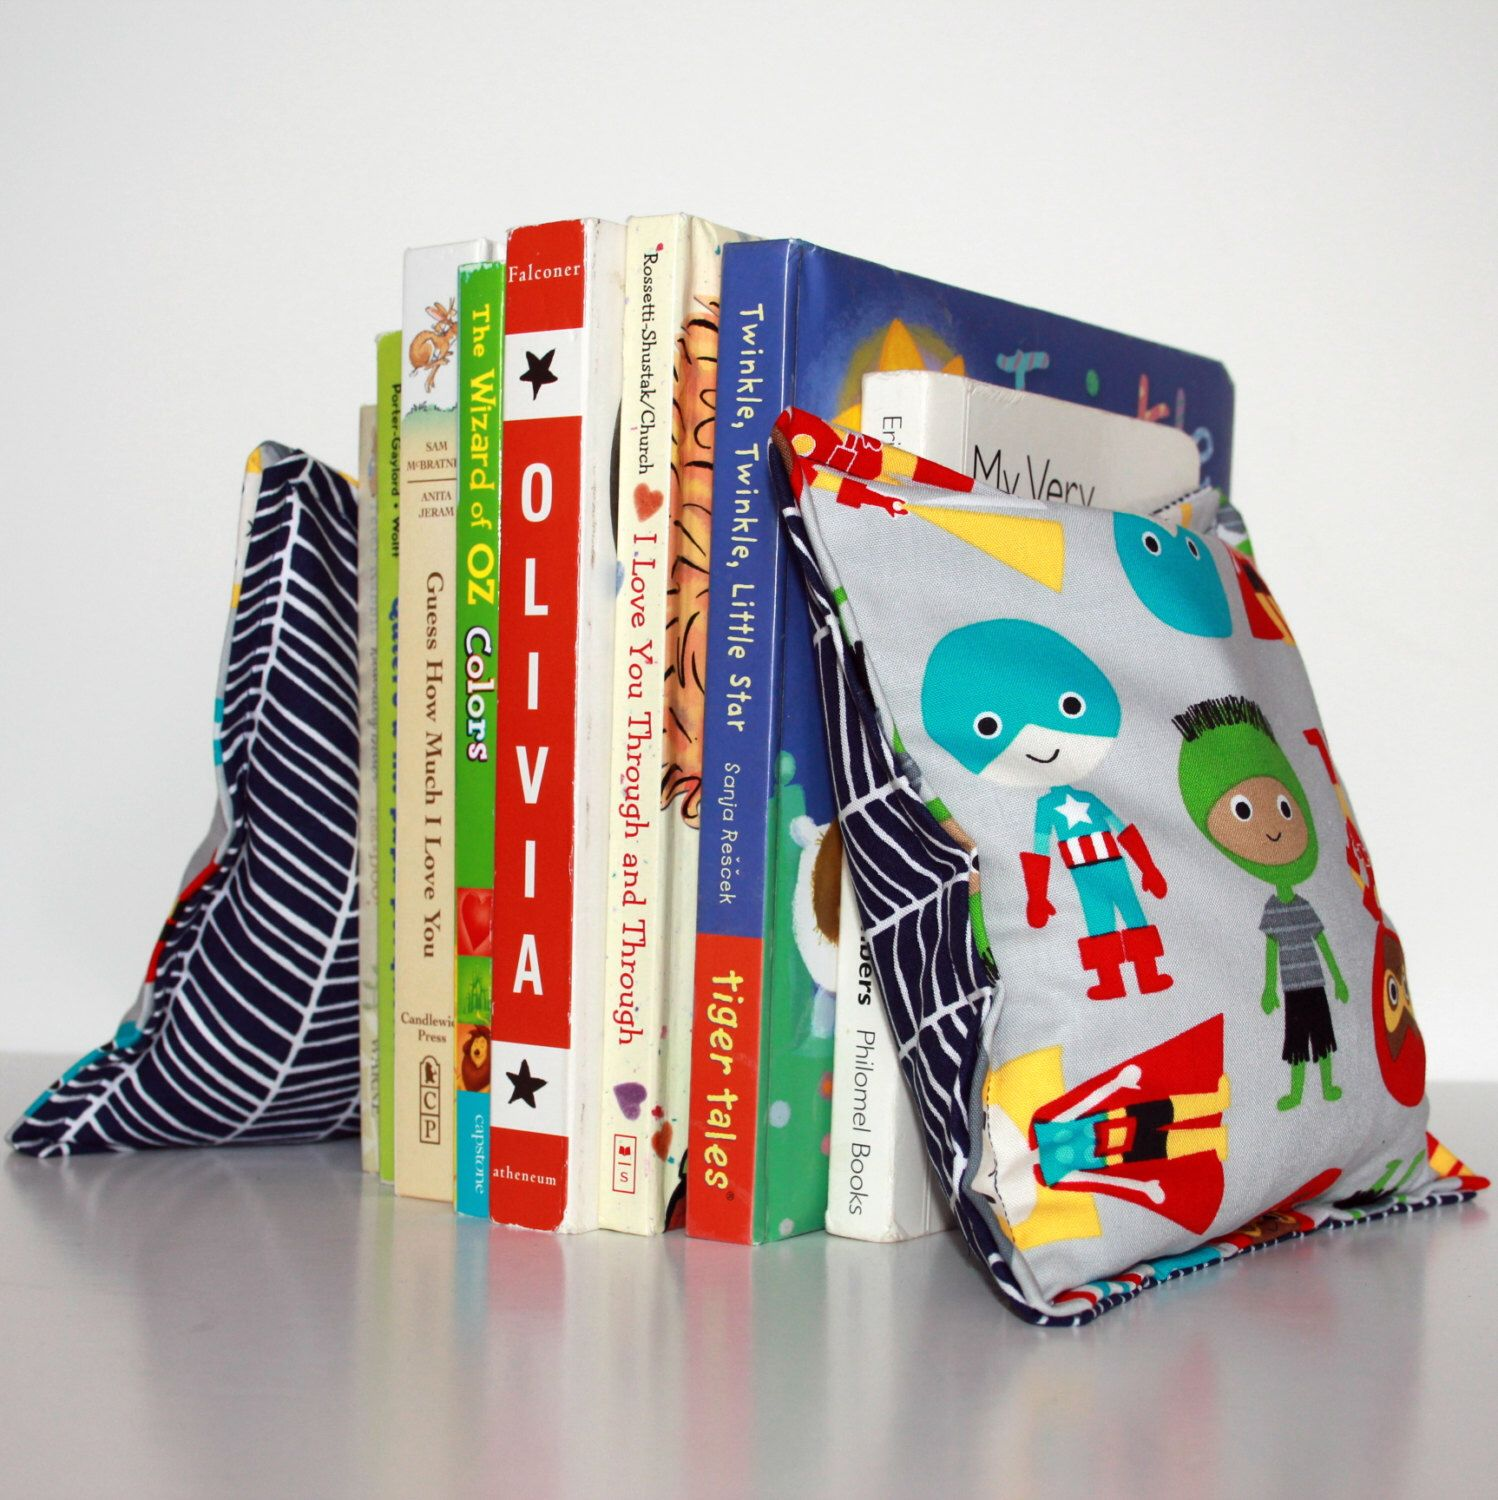 Superhero Nursery Kid S Bookends Child Safe Fabric Bookends Reversible Colorful Nursery And Children S De Kids Bookends Superhero Nursery Modern Bean Bags